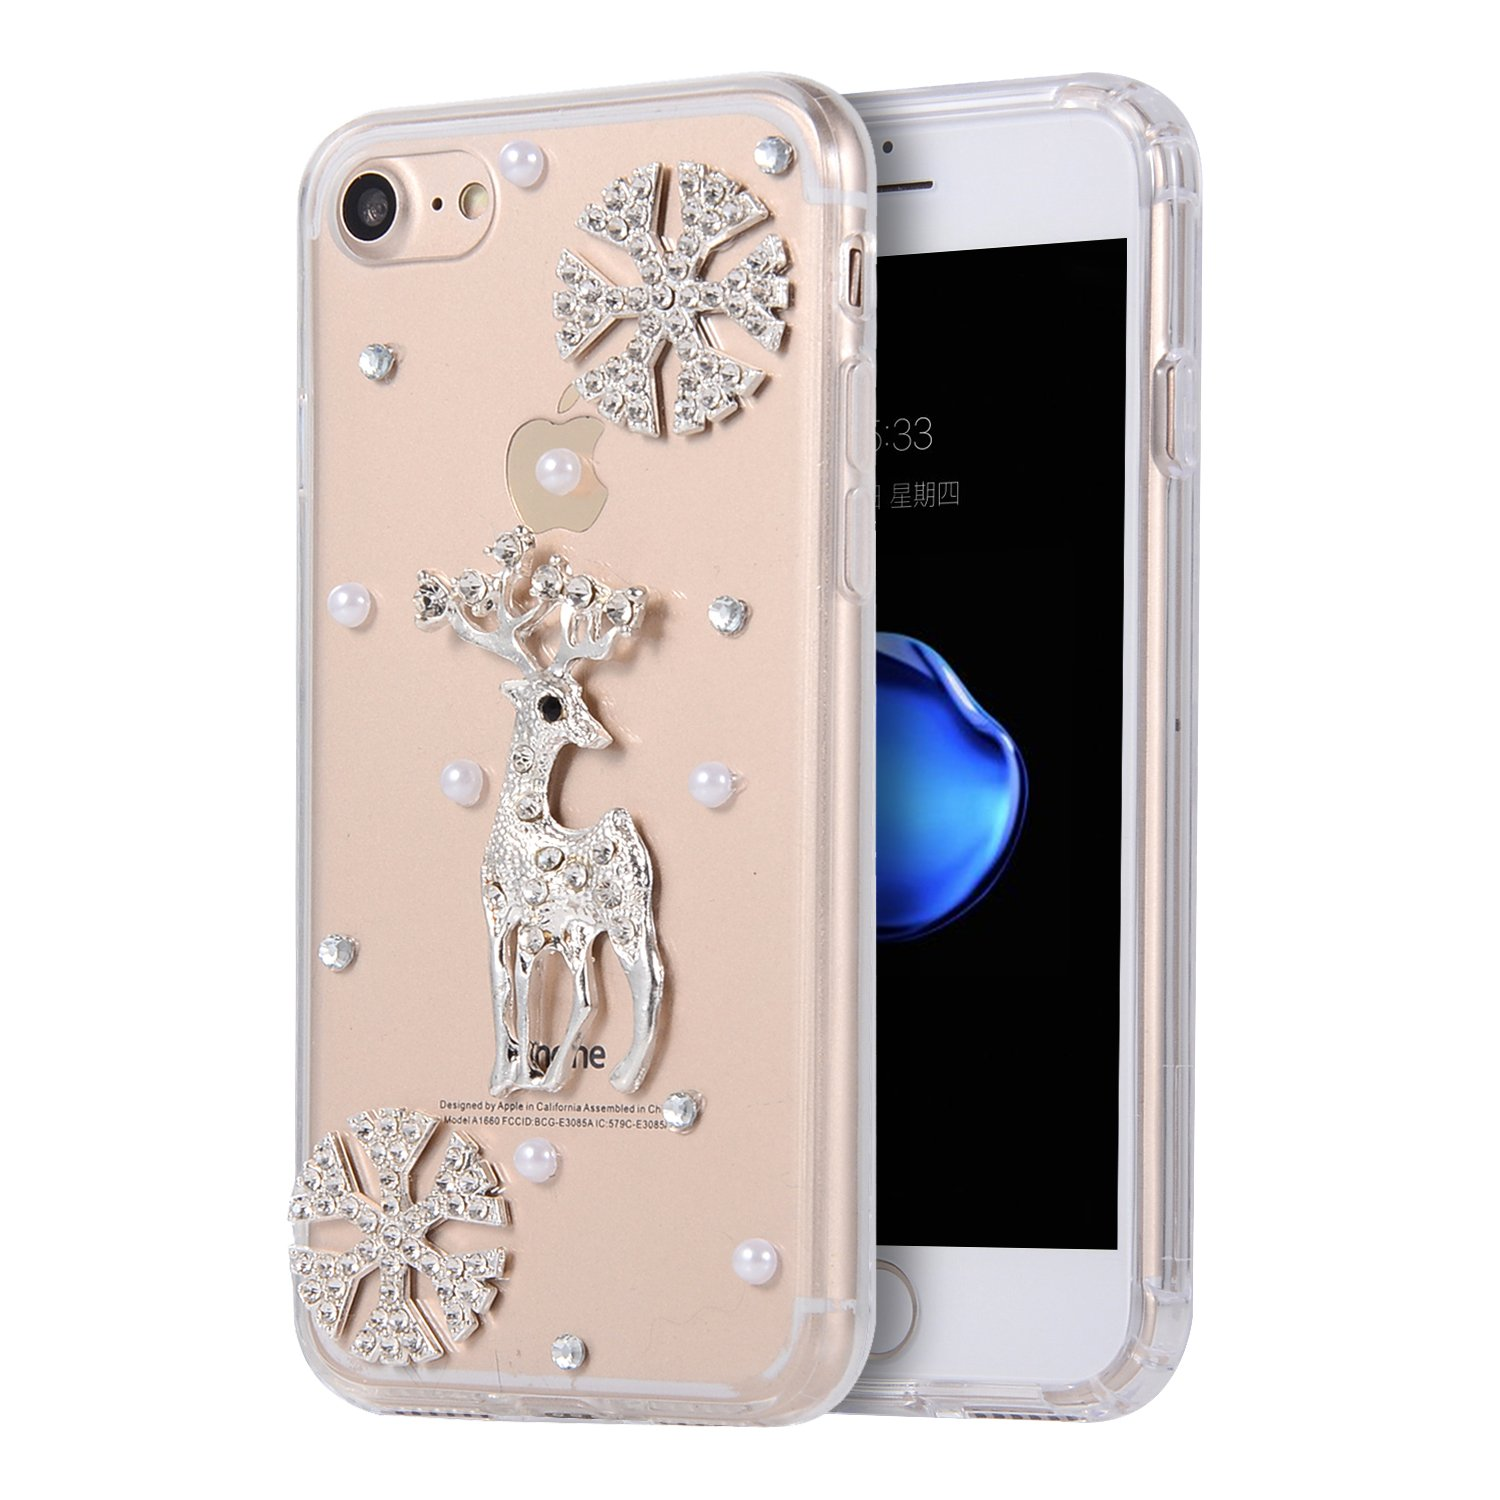 iPhone 8 Plus Transparent Case, iPhone 7 Plus Snowflake Case for Christmas, Gostyle Crystal Rhinestone Bling Glitter Diamond Hard Acrylic Phone Case with Soft TPU Bumper Frame and Built in Dust Plug.